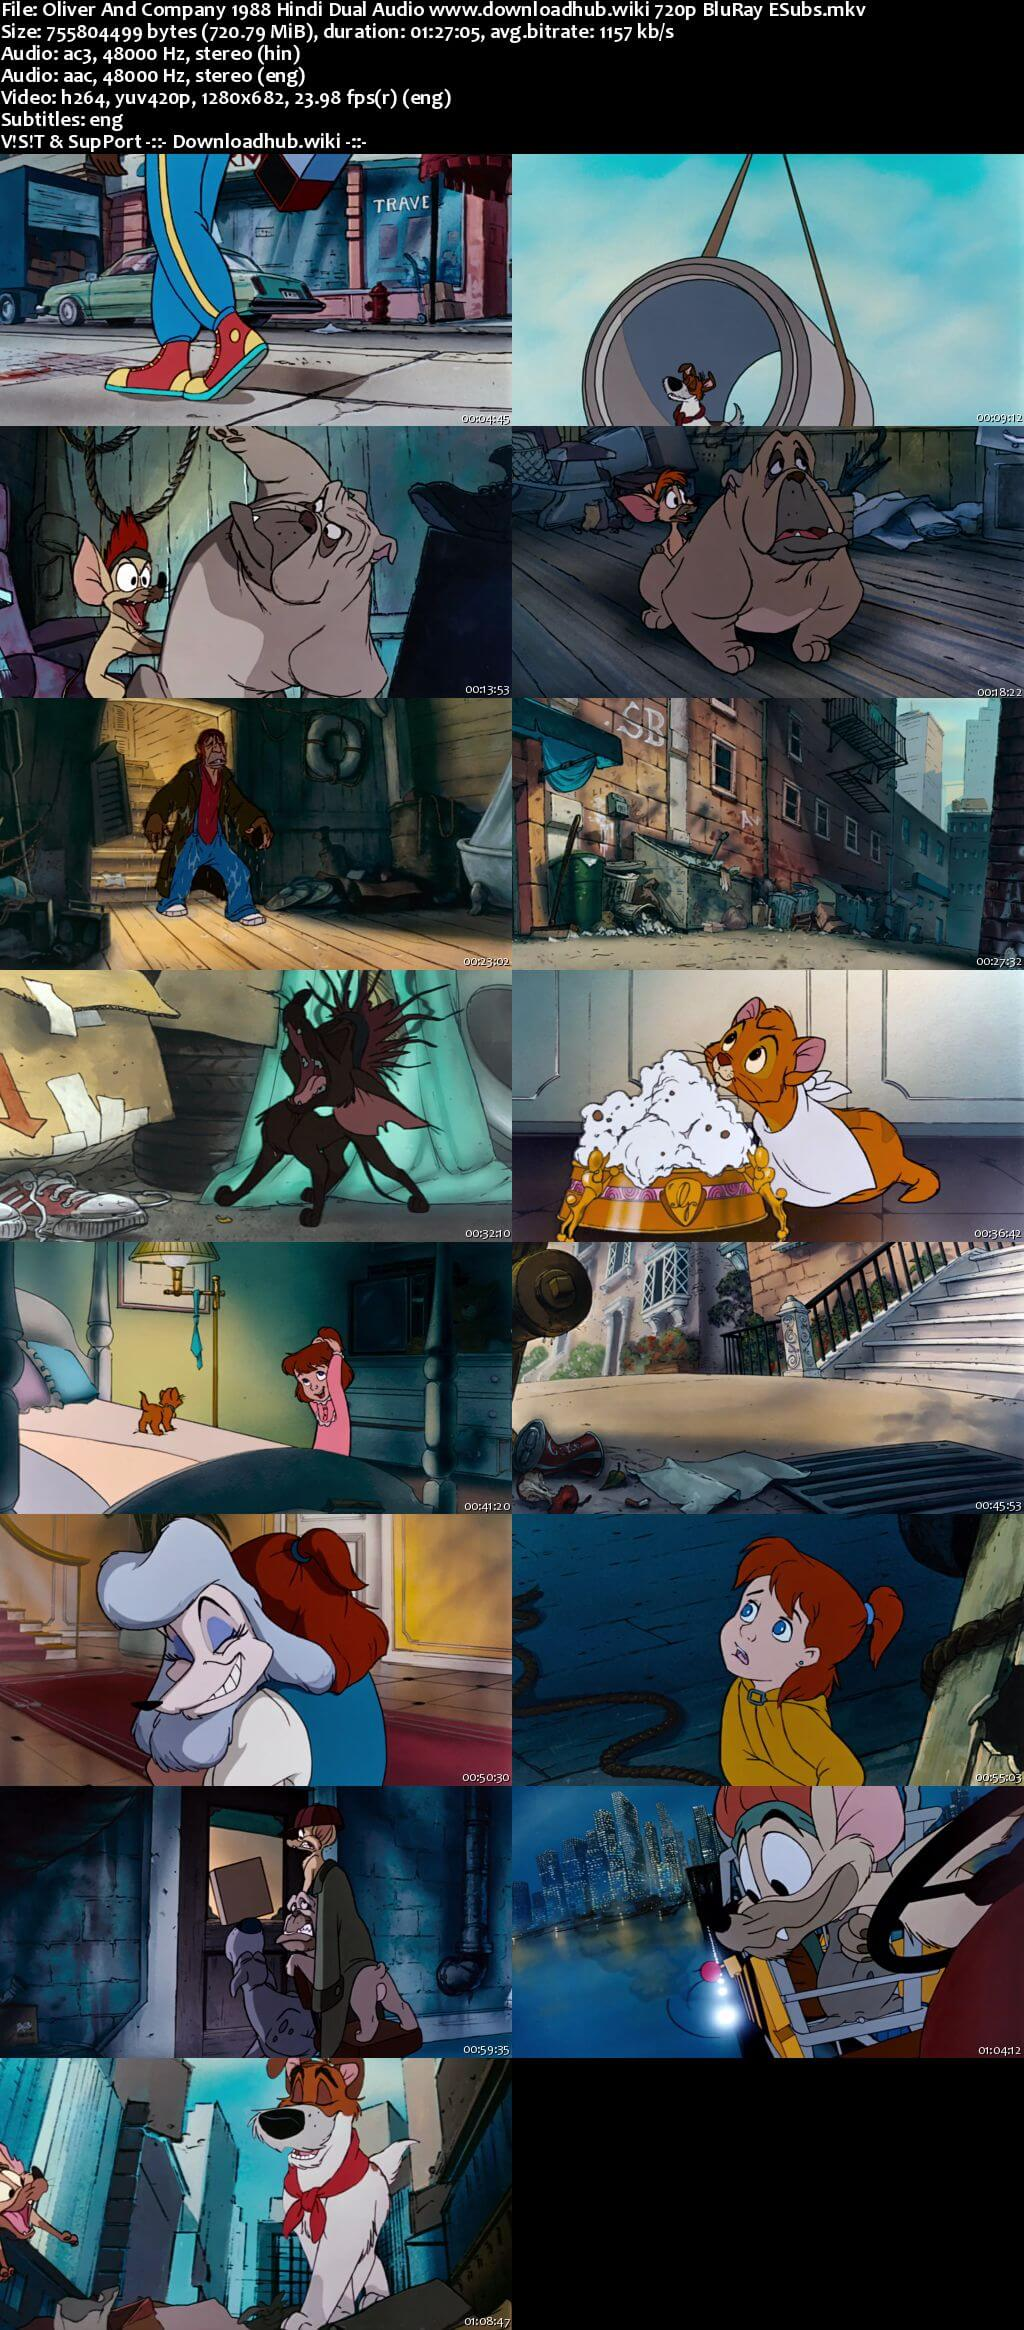 Oliver And Company 1988 Hindi Dual Audio 720p BluRay ESubs